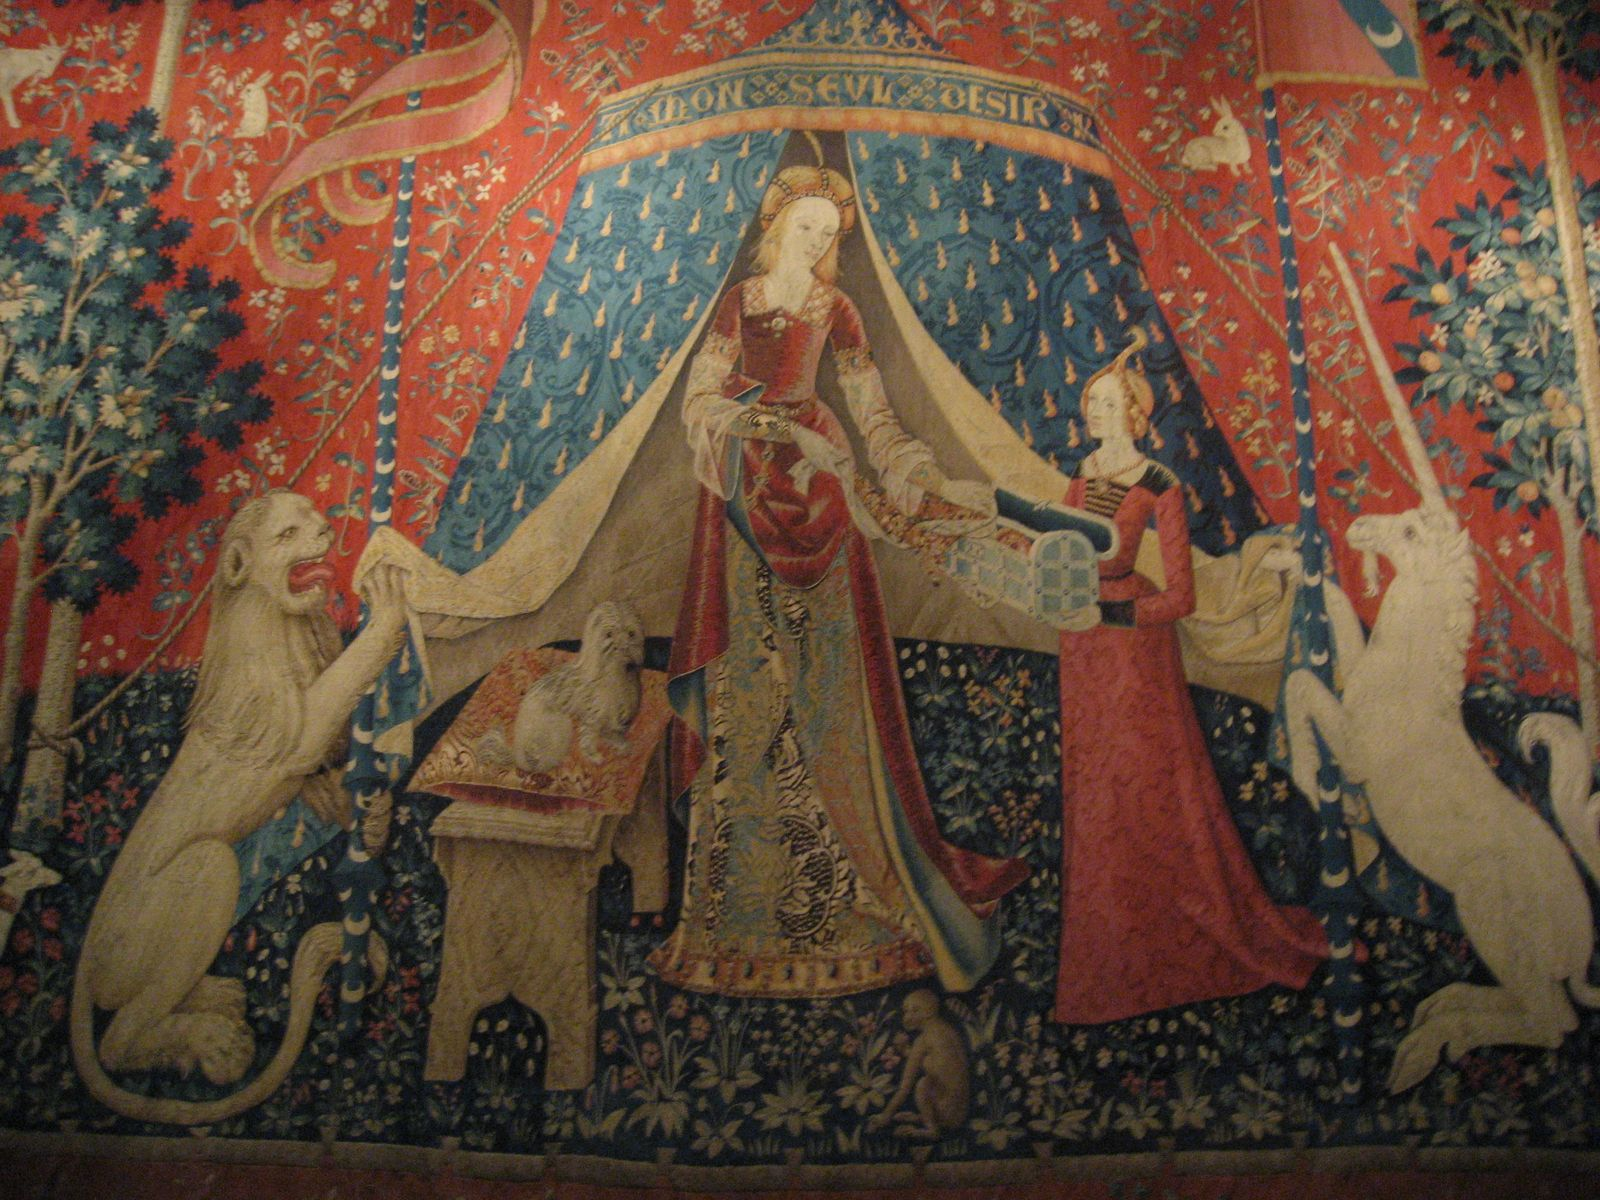 date unknown (late 15th century) - Lady and the Unicorn tapestry